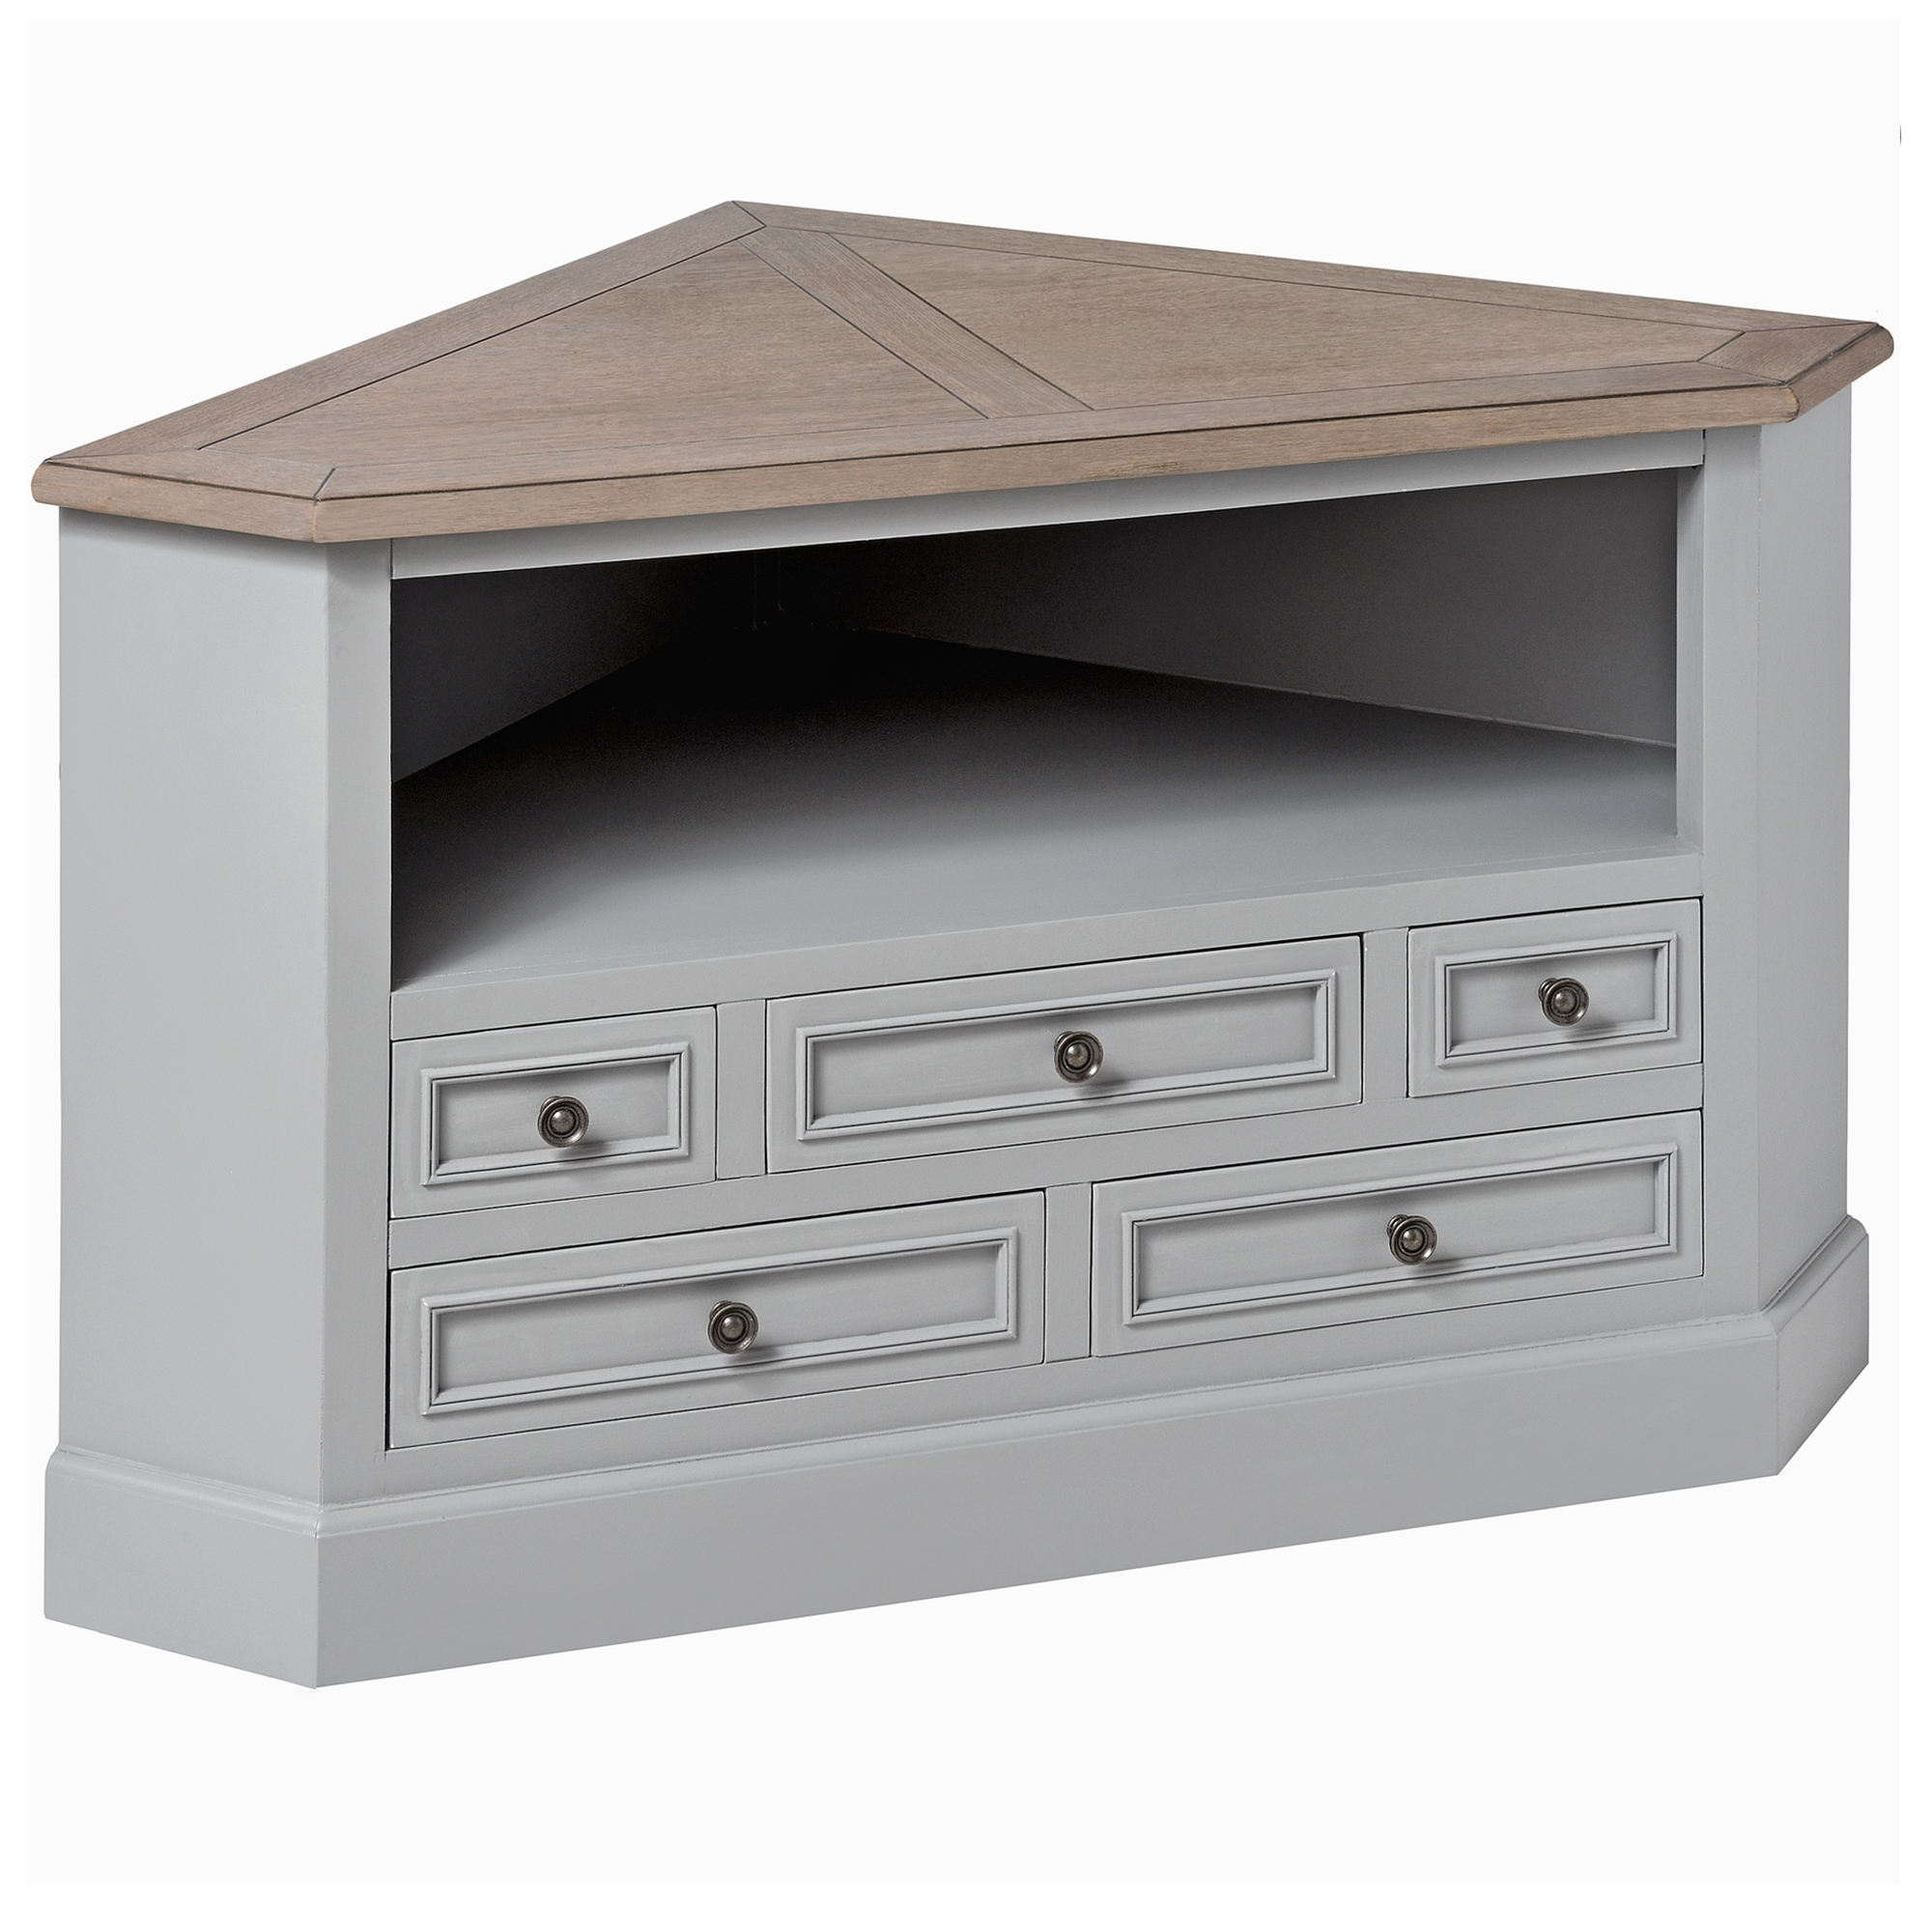 churchill shabby chic tv cabinet available online now. Black Bedroom Furniture Sets. Home Design Ideas